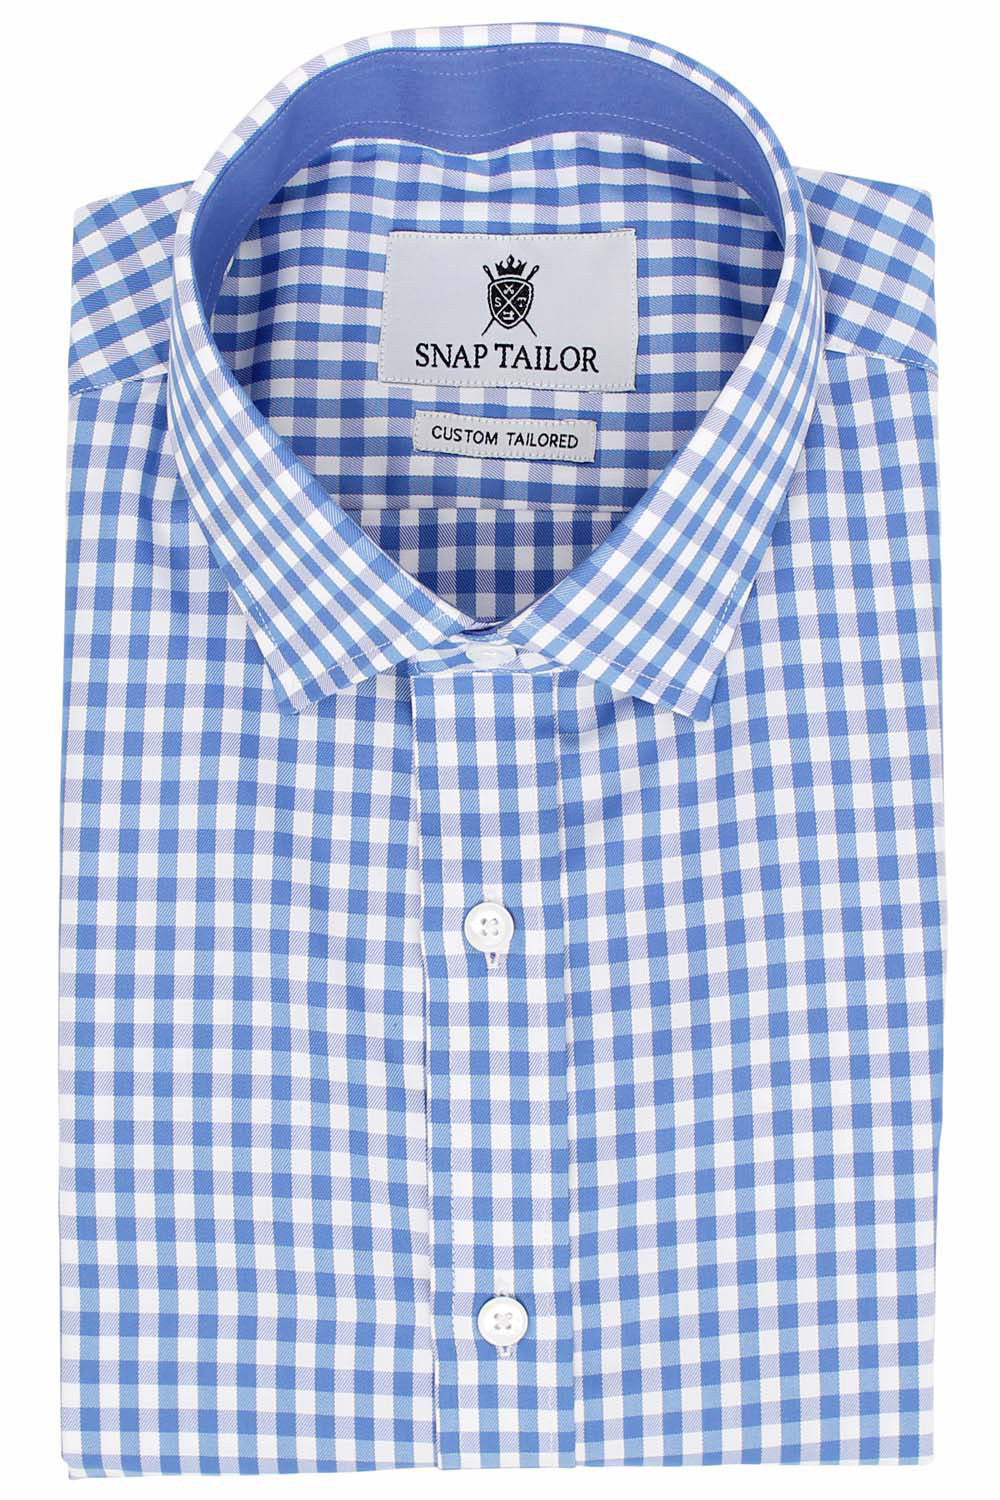 Alternate Photo of the Gingham Twill Casual Shirt in Blue